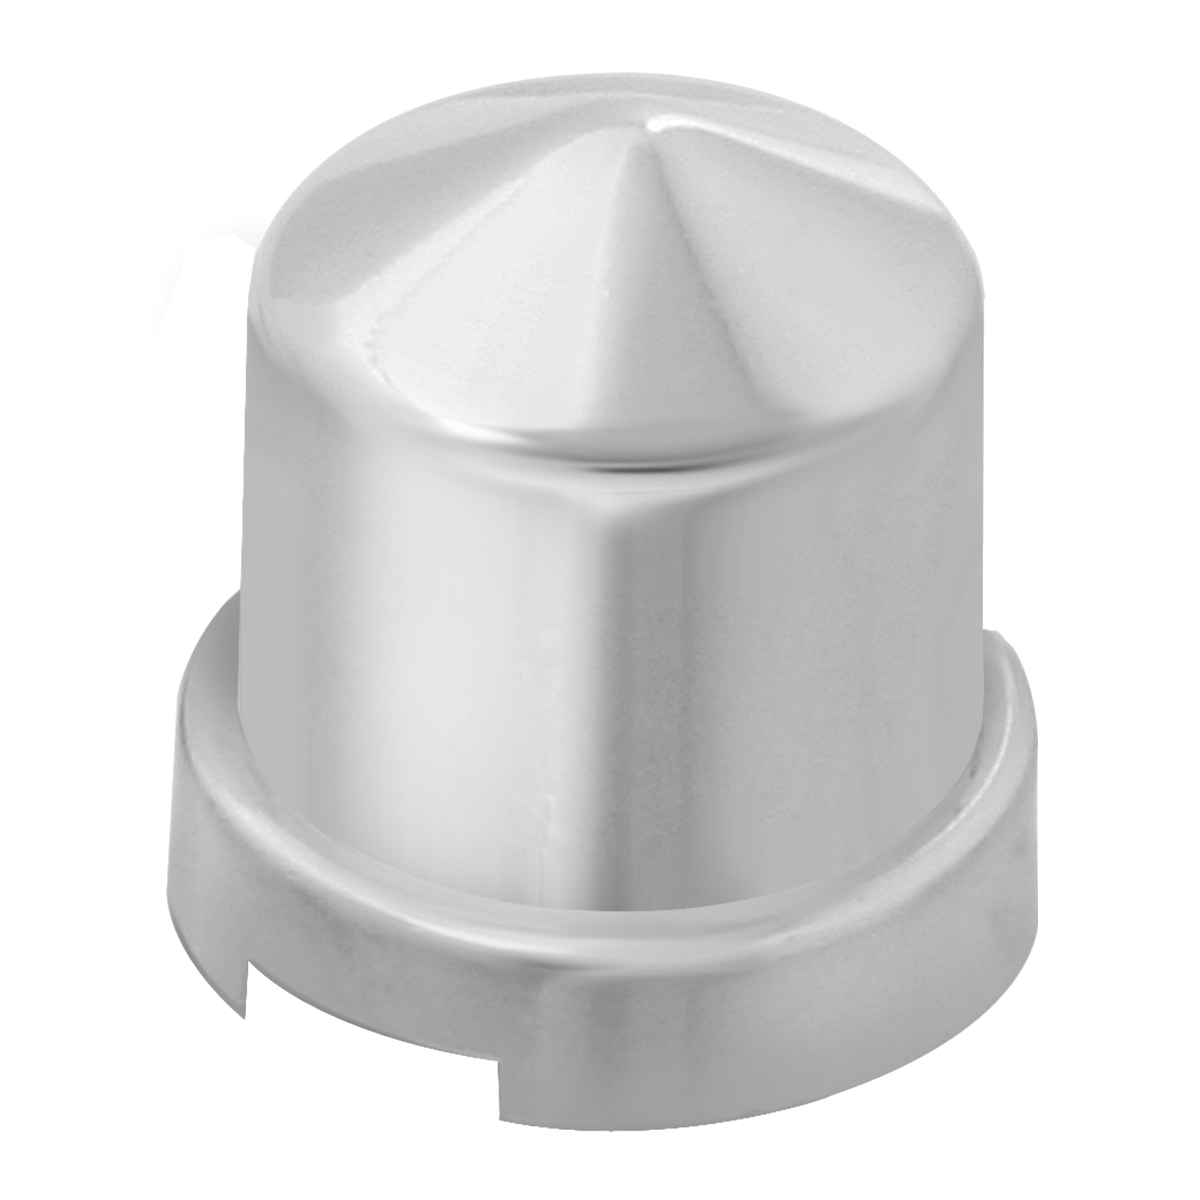 "Chrome Plastic ⁷∕₁₆"" & 12 mm Push-On Multi-Size Round Pointed Lug Nut Cover"